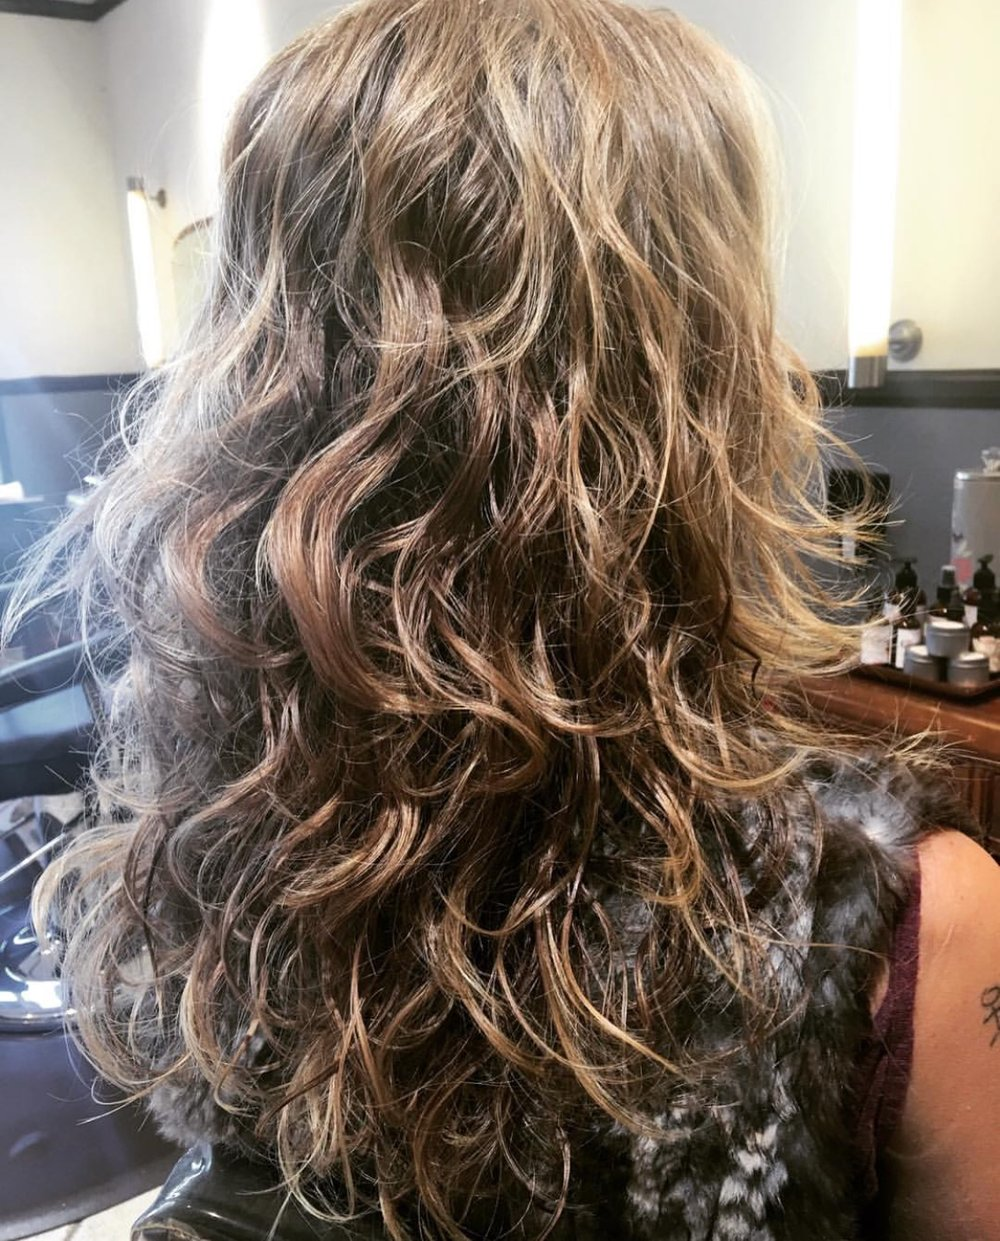 For air dried and defused curls - Rosemary styling Gel is a perfect addition to Beachwaves texture spray